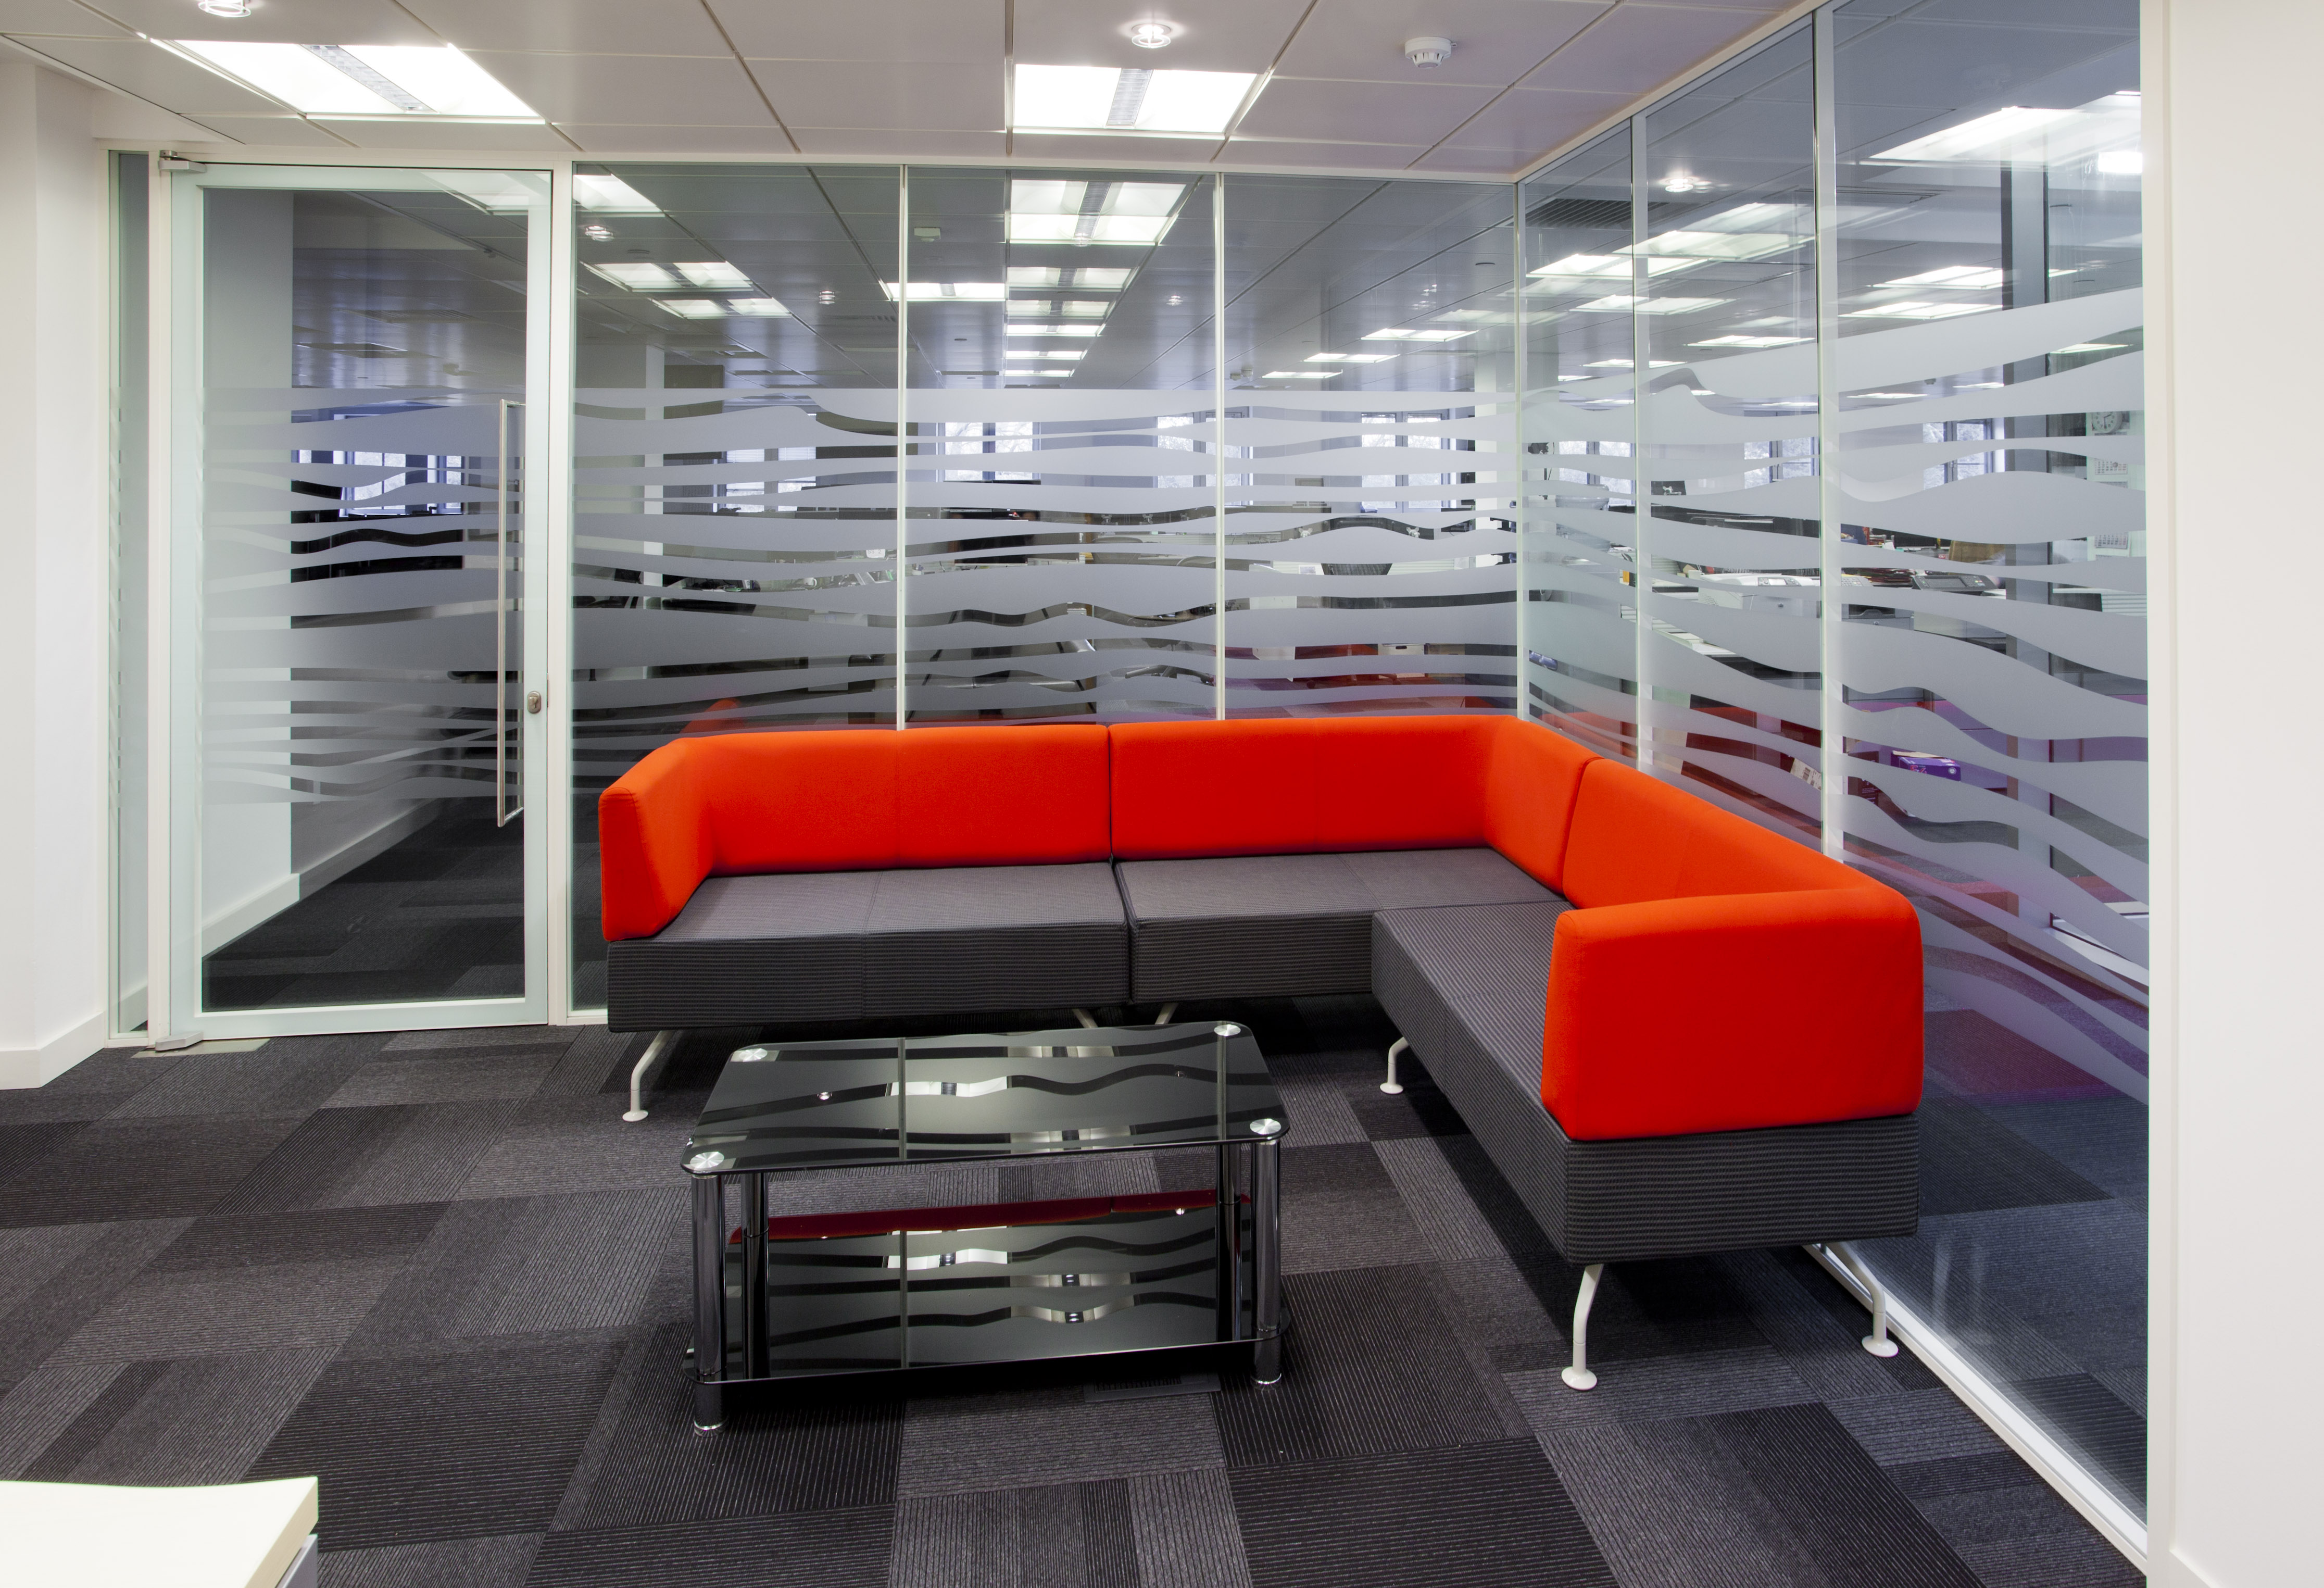 Soft seating office furniture in designed breakout space | Novex